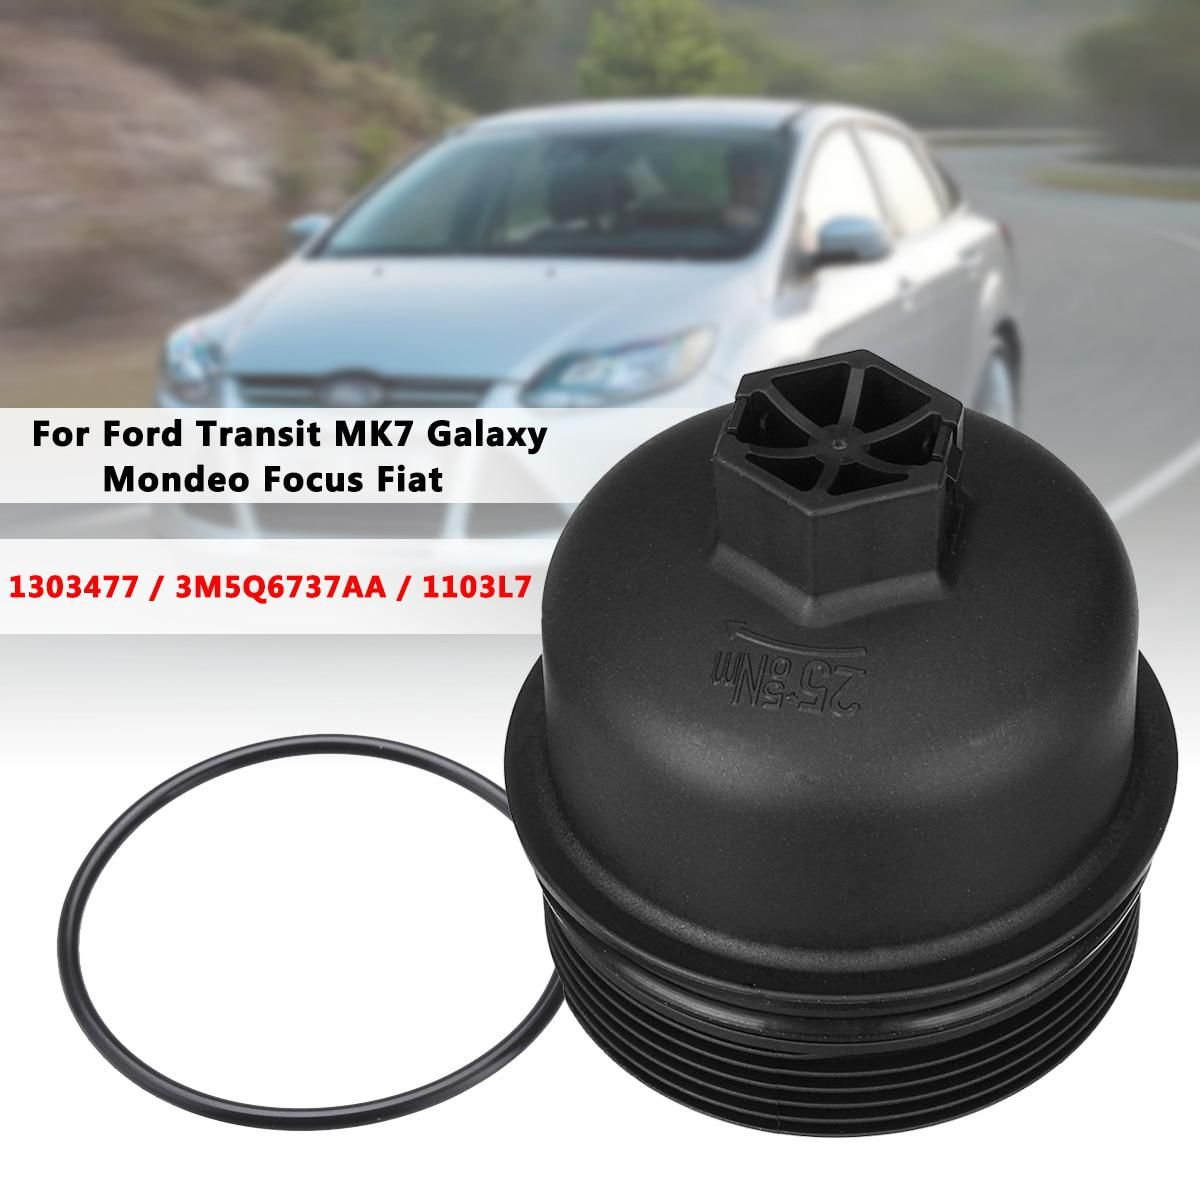 Car Oil Filter Lid Housing Top Cover Cap 3m5q6737aa 1103l7 1103p8 73500070 For Ford Transit Mk7 Galaxy Mondeo Focus Fiat With Images Oil Filter Ford Transit Filters